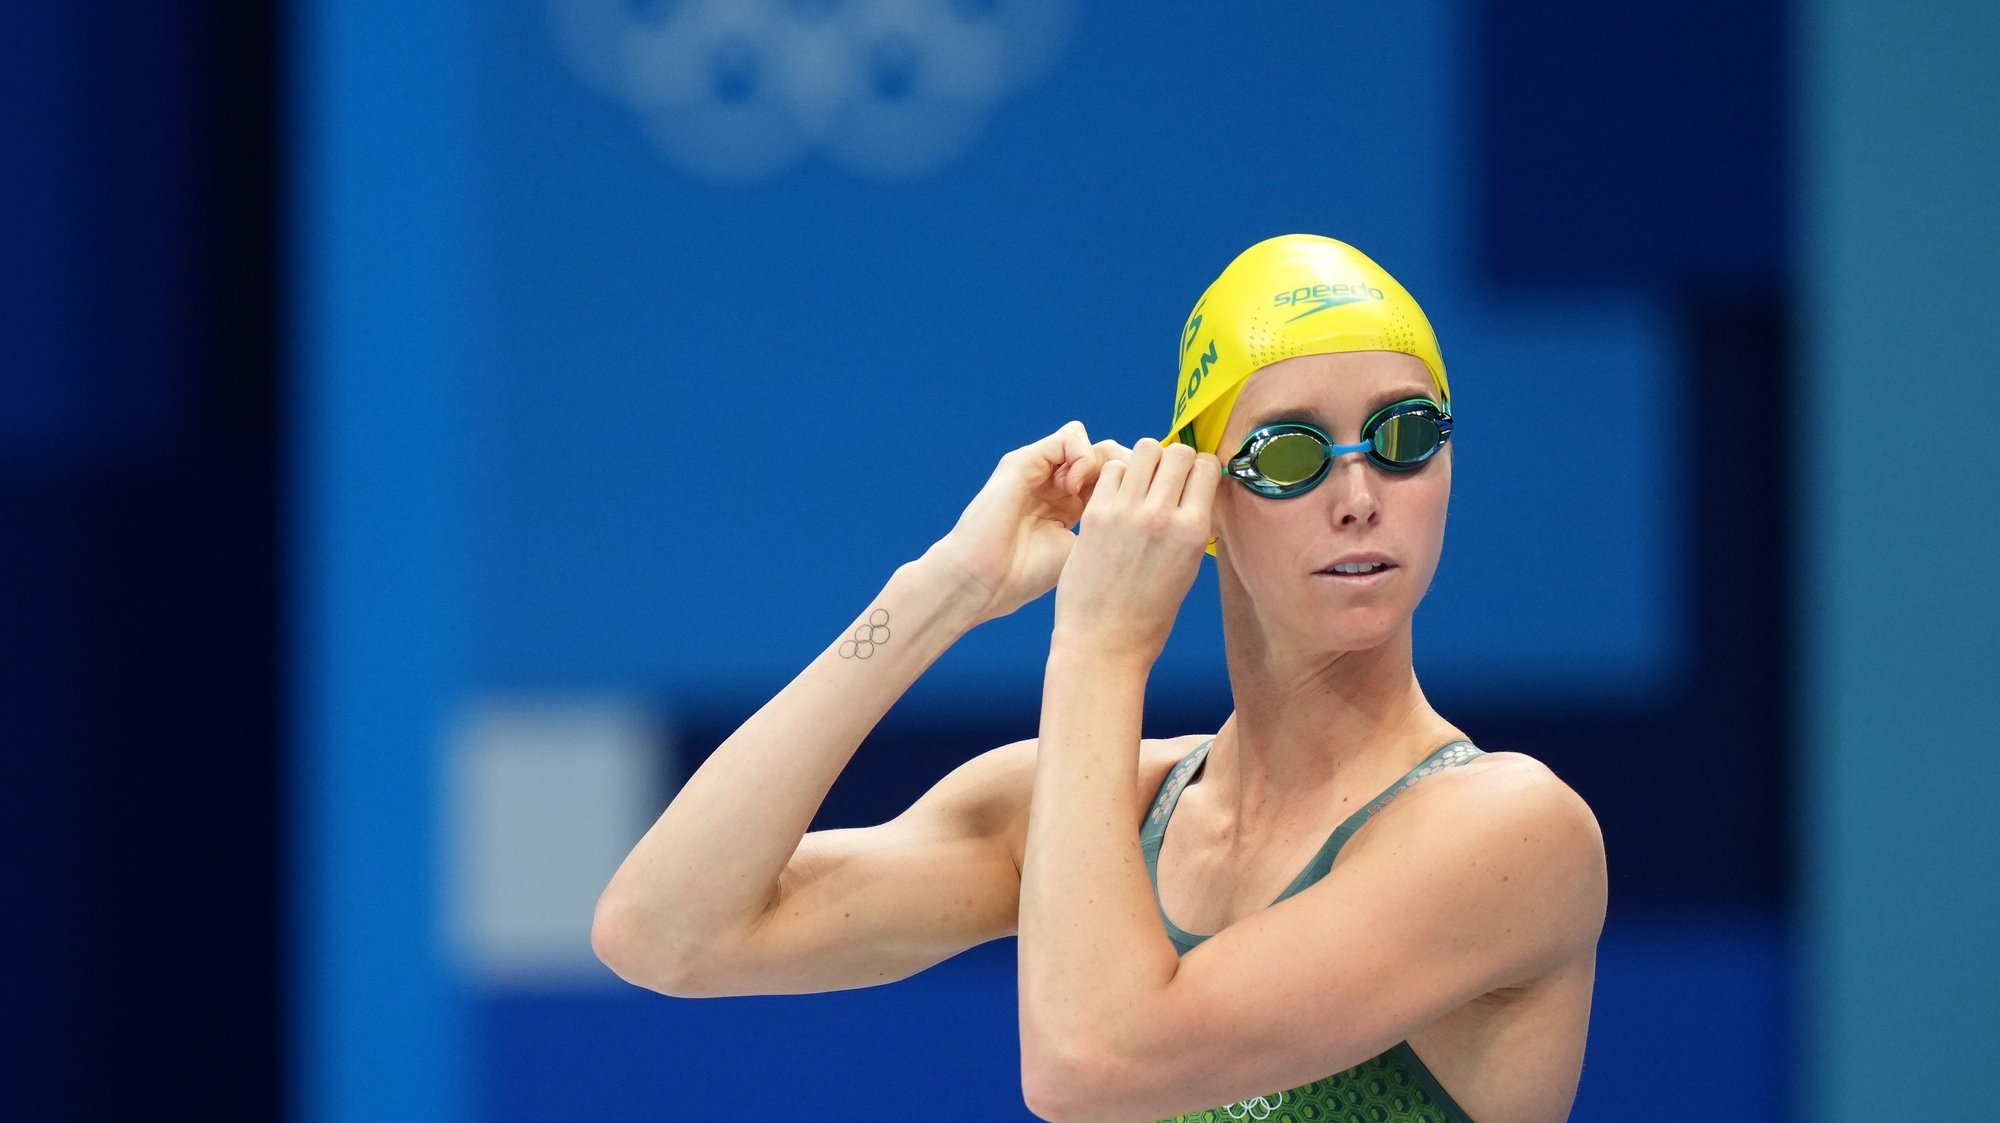 epa09365724 Emma McKeon of Australia prepares before her Bronze medal swim in the Women's 100m Butterfly Final during the Tokyo Olympic Games, at the Tokyo Aquatics Centre in Tokyo, Japan, 26 July 2021.  EPA/JOE GIDDENS AUSTRALIA AND NEW ZEALAND OUT